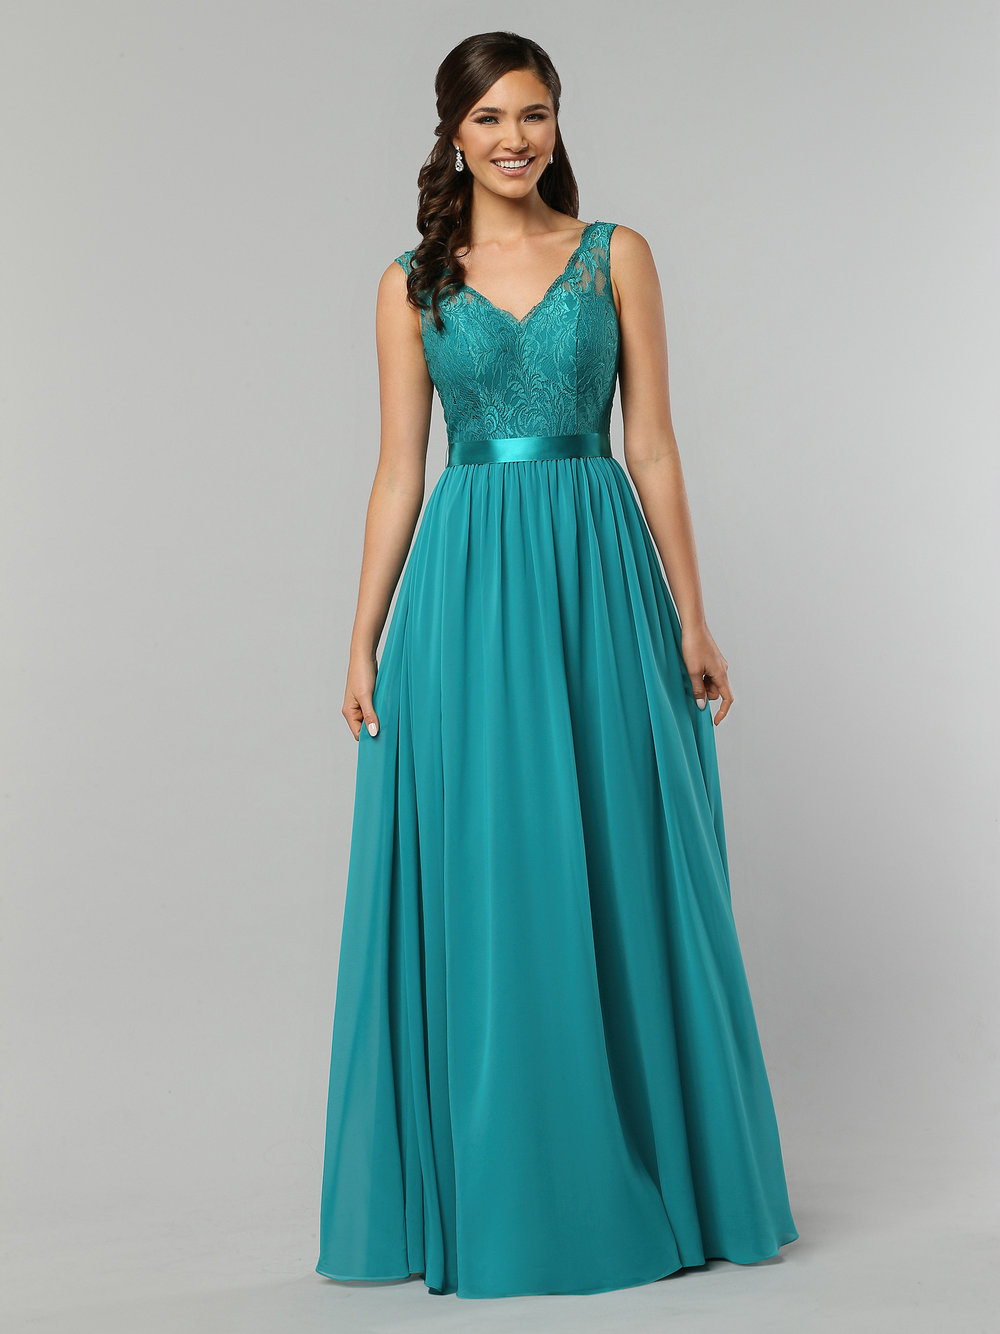 Da Vinci - Da Vinci offers an elegant and less expensive bridesmaid dress alternatives.